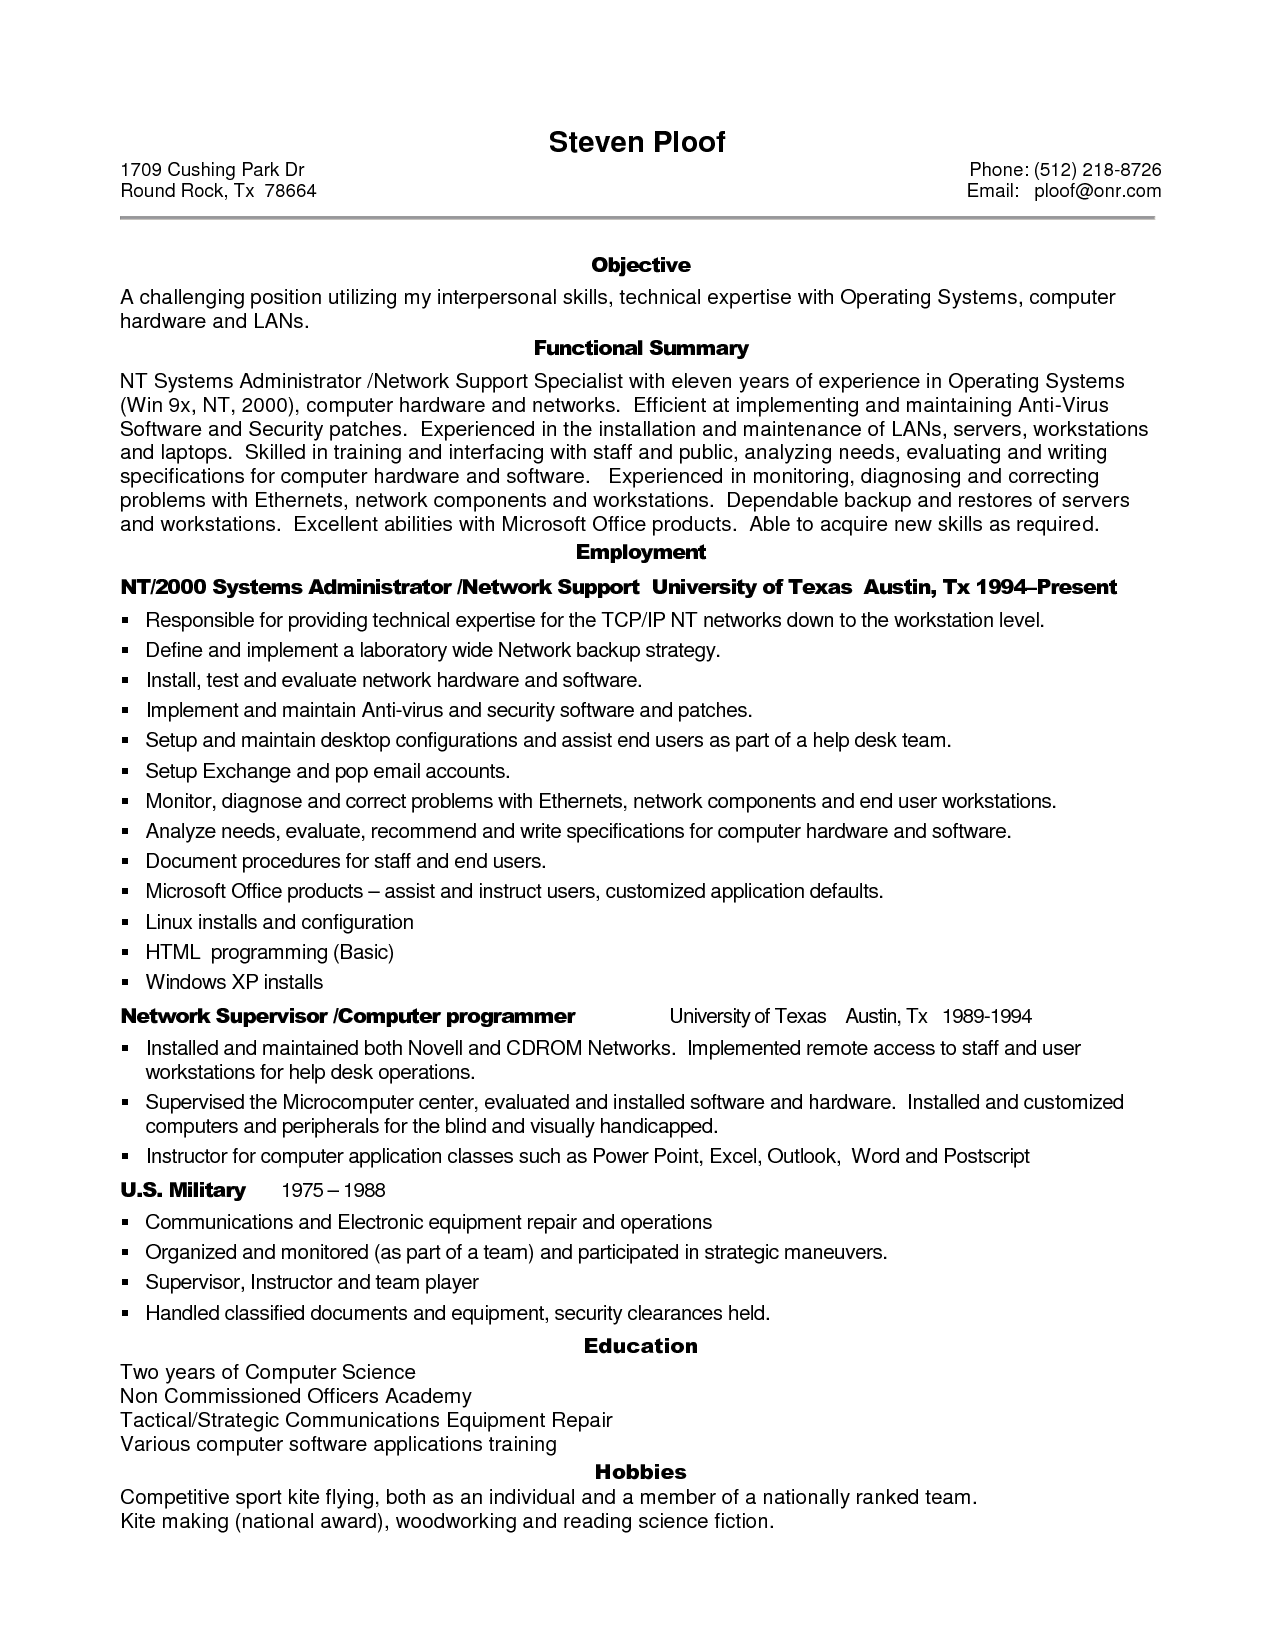 Beautiful Sample Resume For Experienced It Professional Sample Resume For Experienced  It Professional, Resume Tips For Within Resume Examples For Experienced Professionals